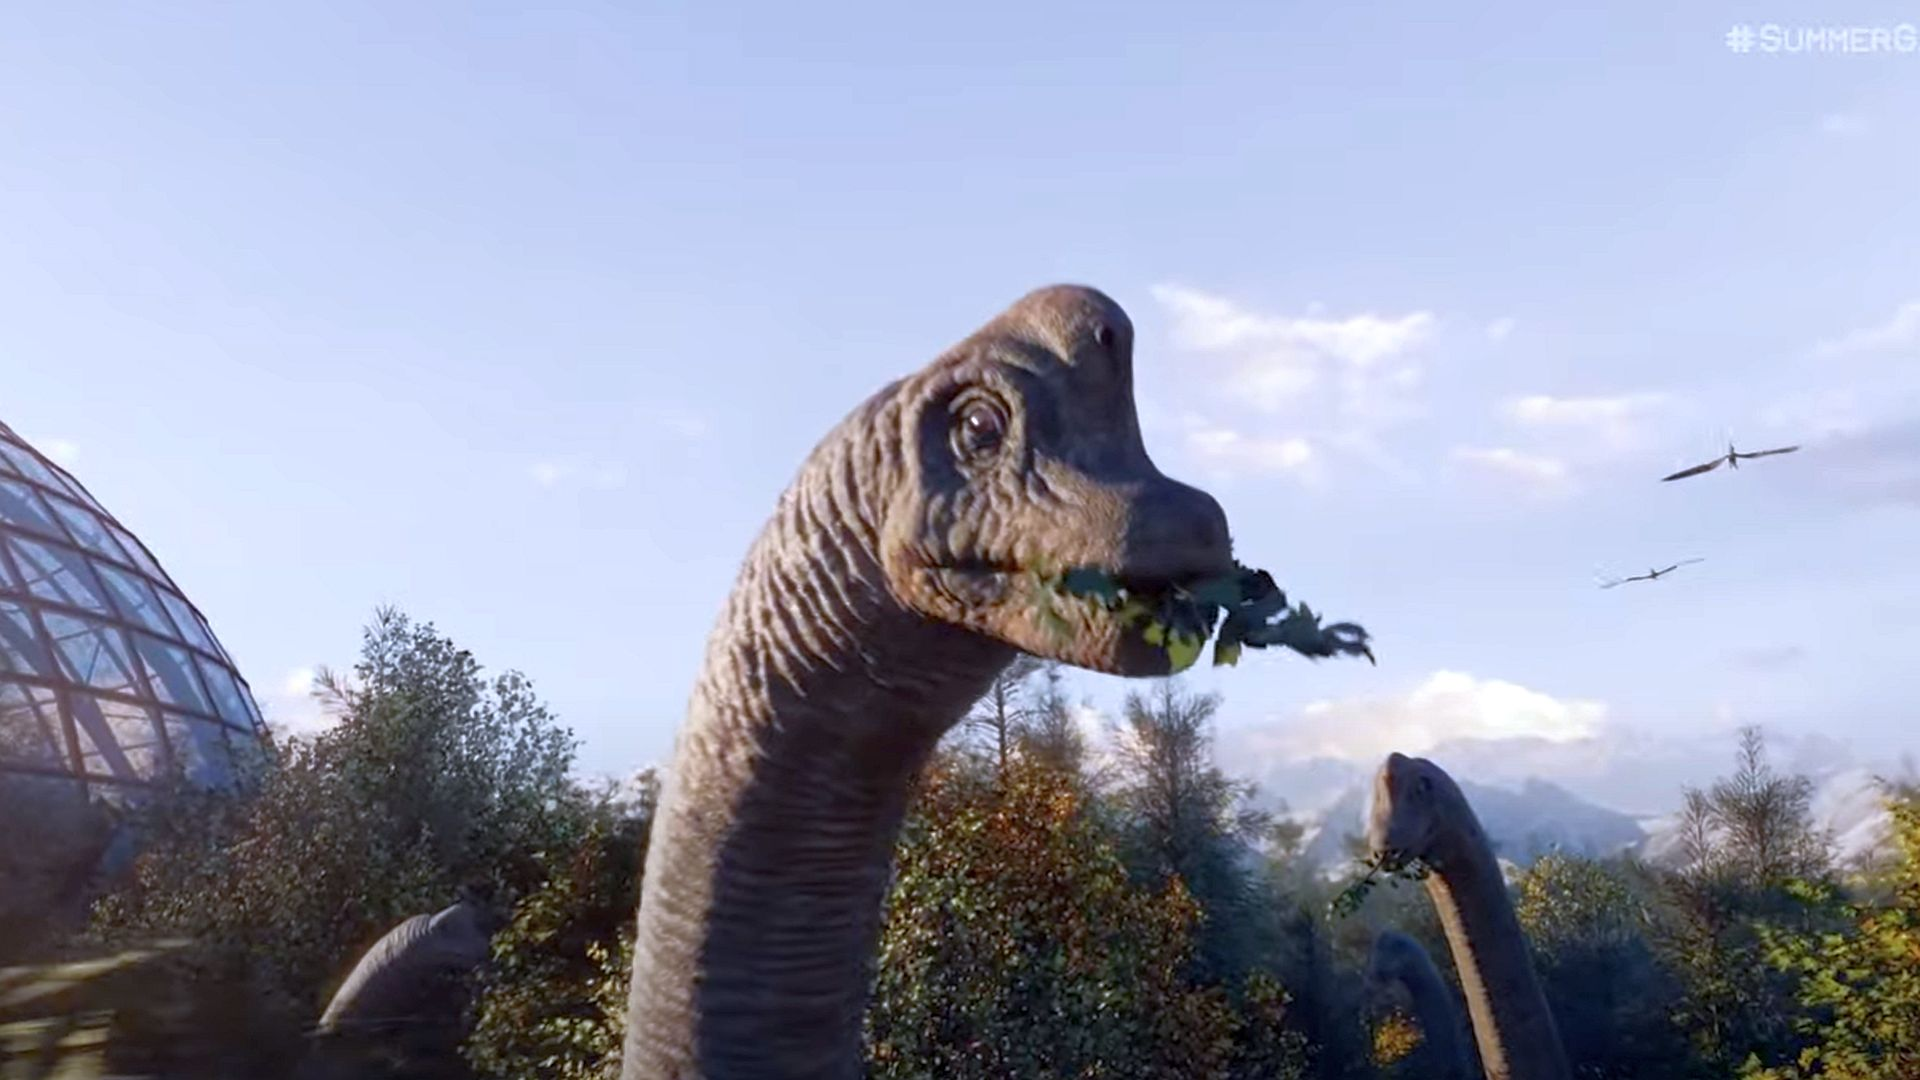 Jurassic World Evolution 2 comes to Steam this year